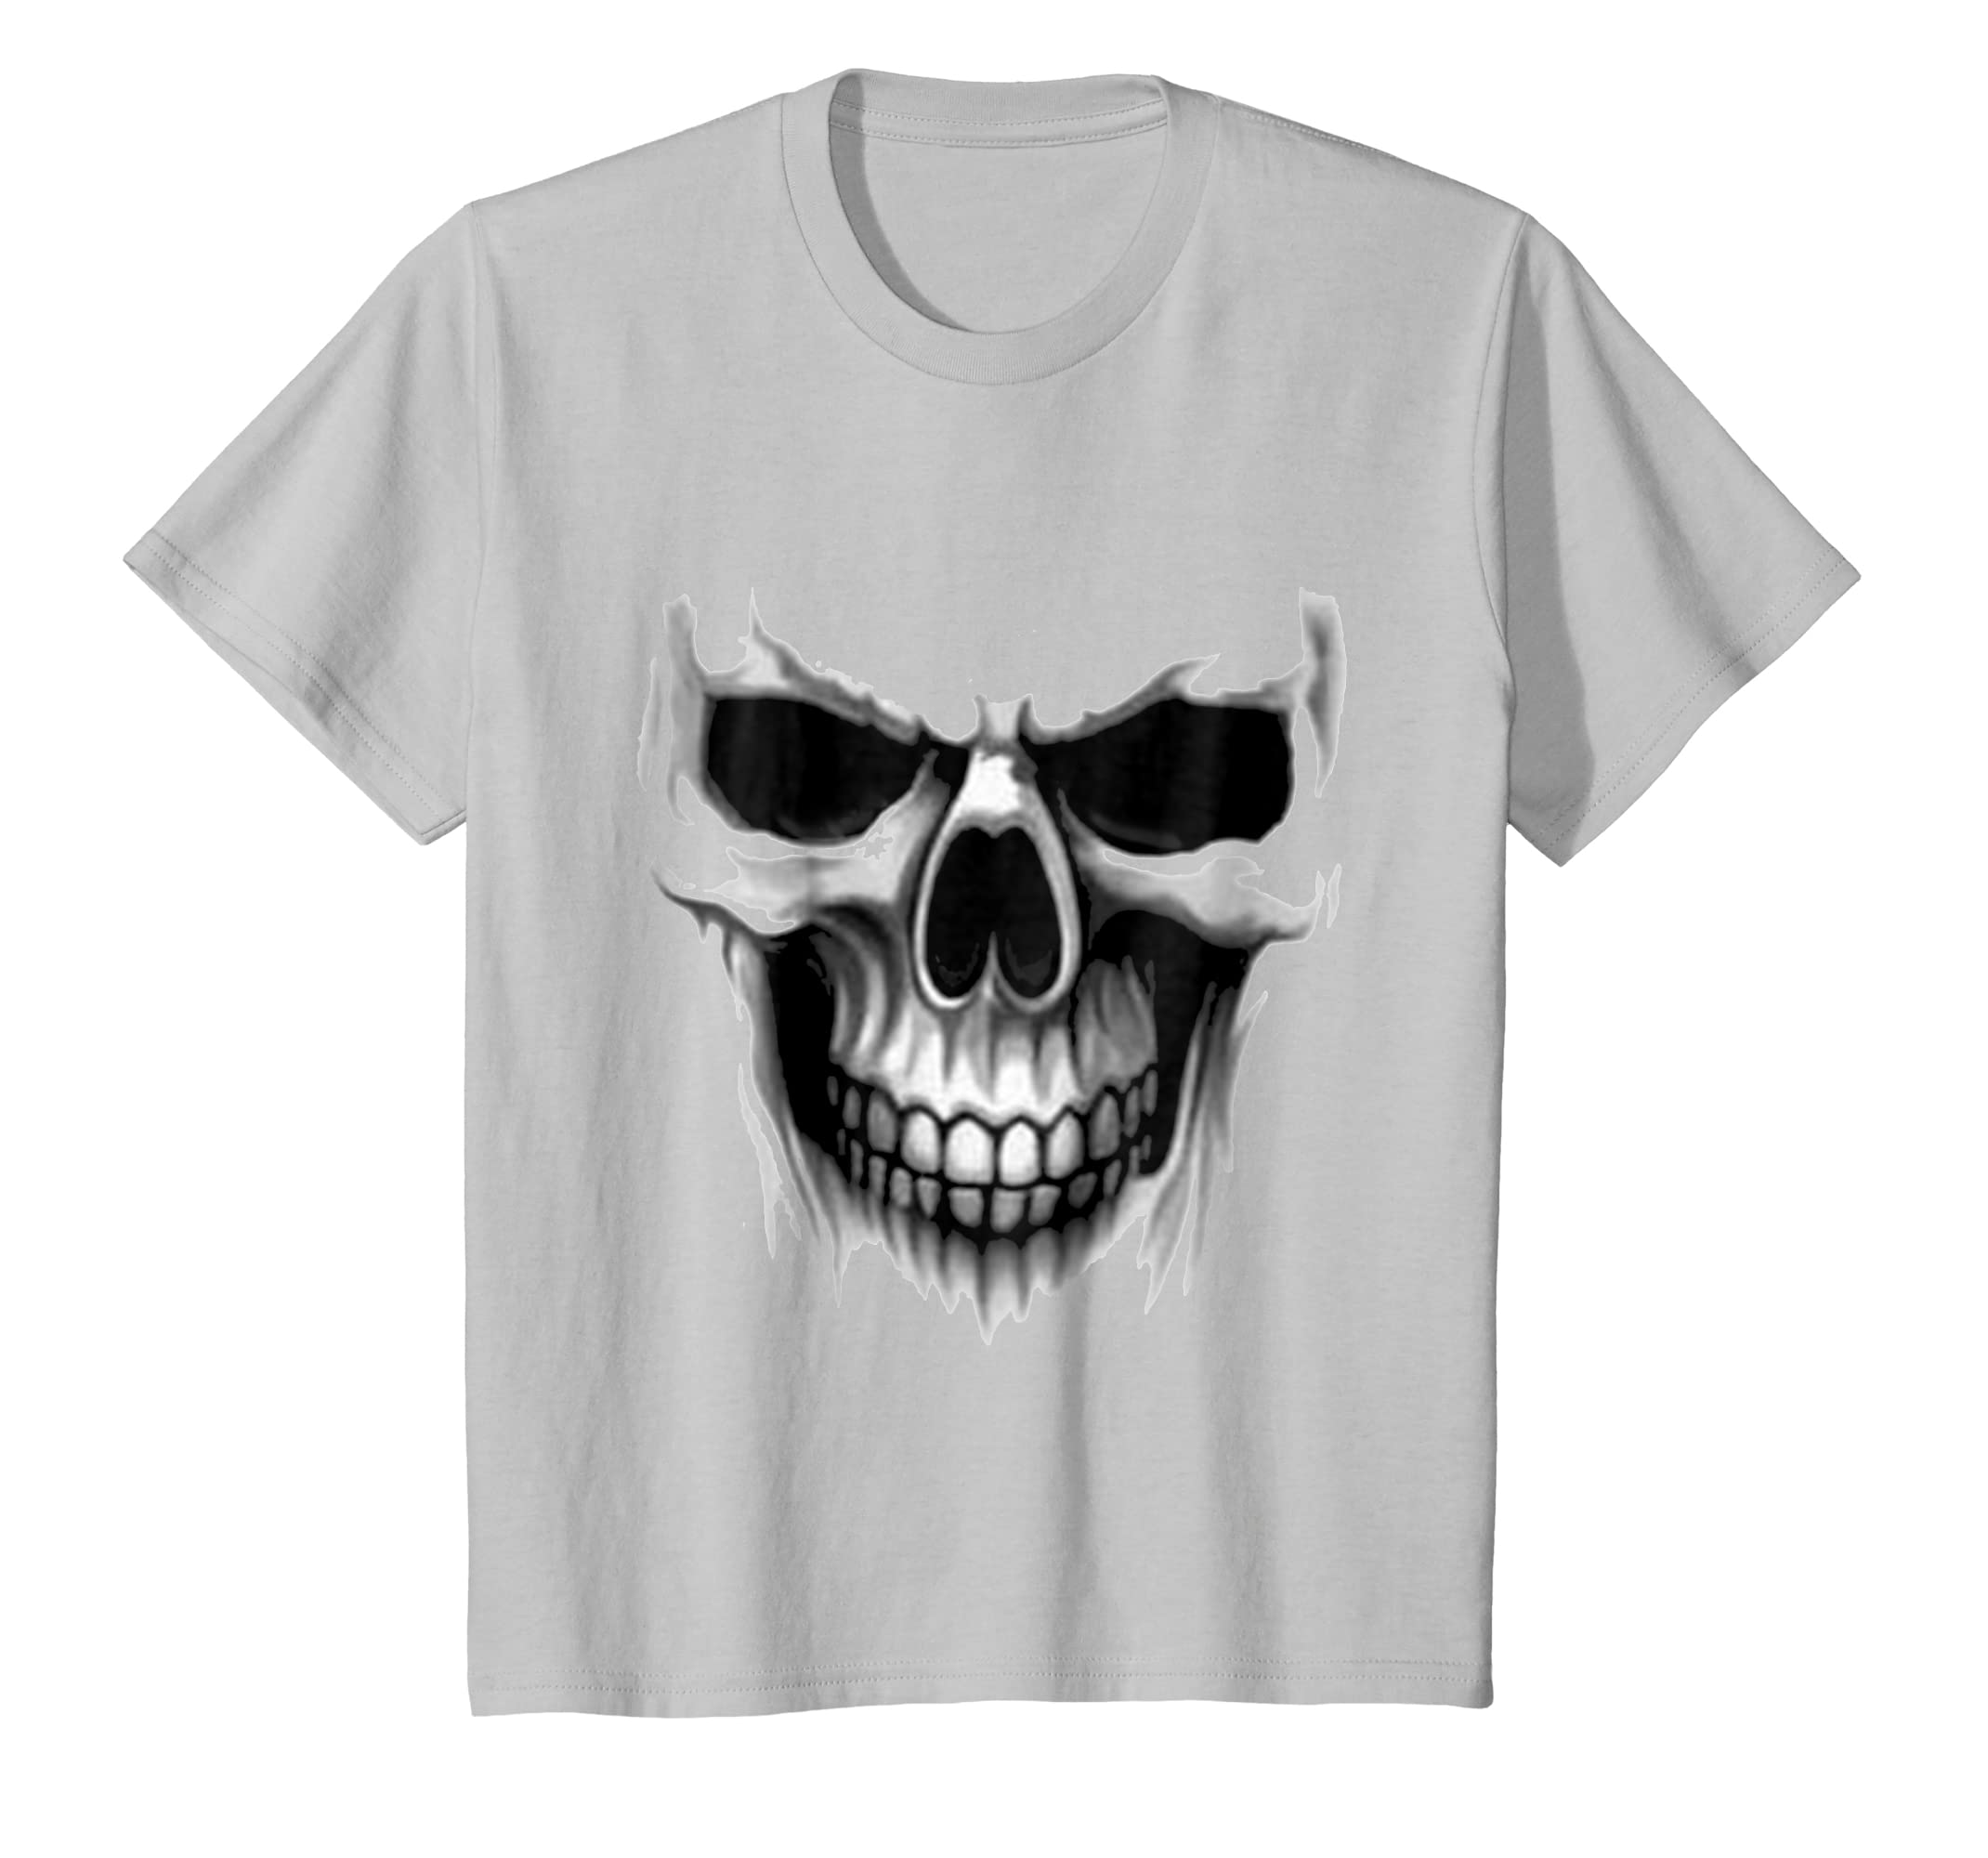 Amazon.com: CRANIUM DARK HORROR REAL SKULL BLACK DEAD MASK TEE-SHIRT: Clothing